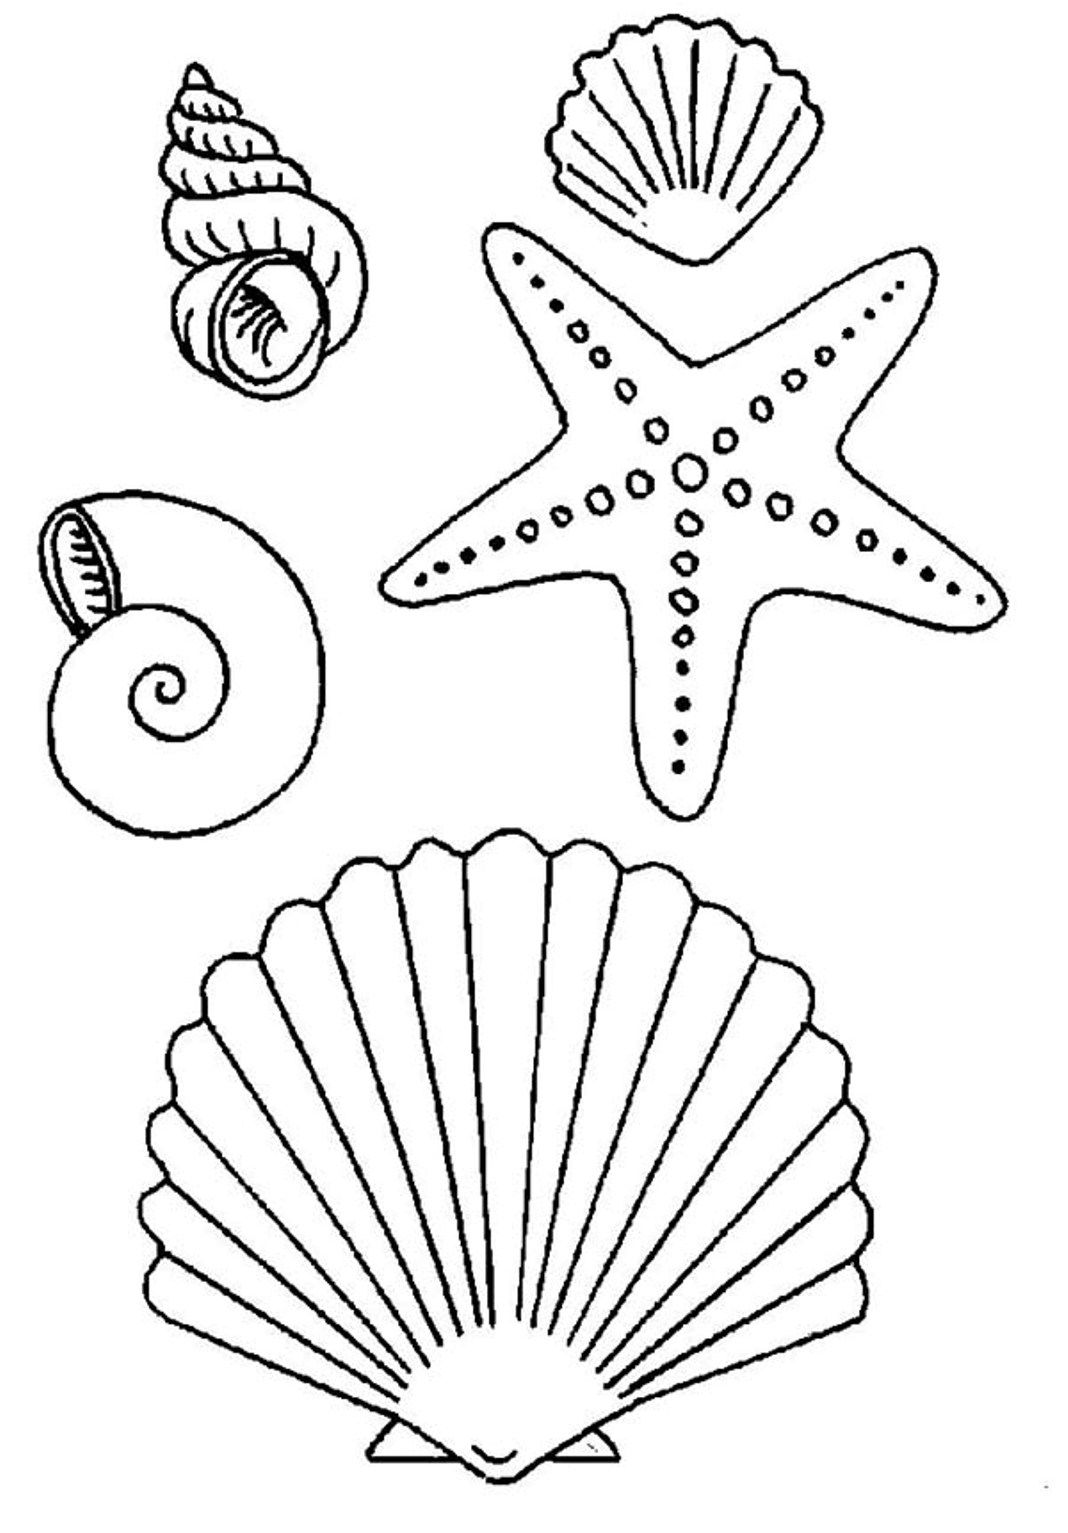 Download and Print seashell and starfish coloring pages Verano